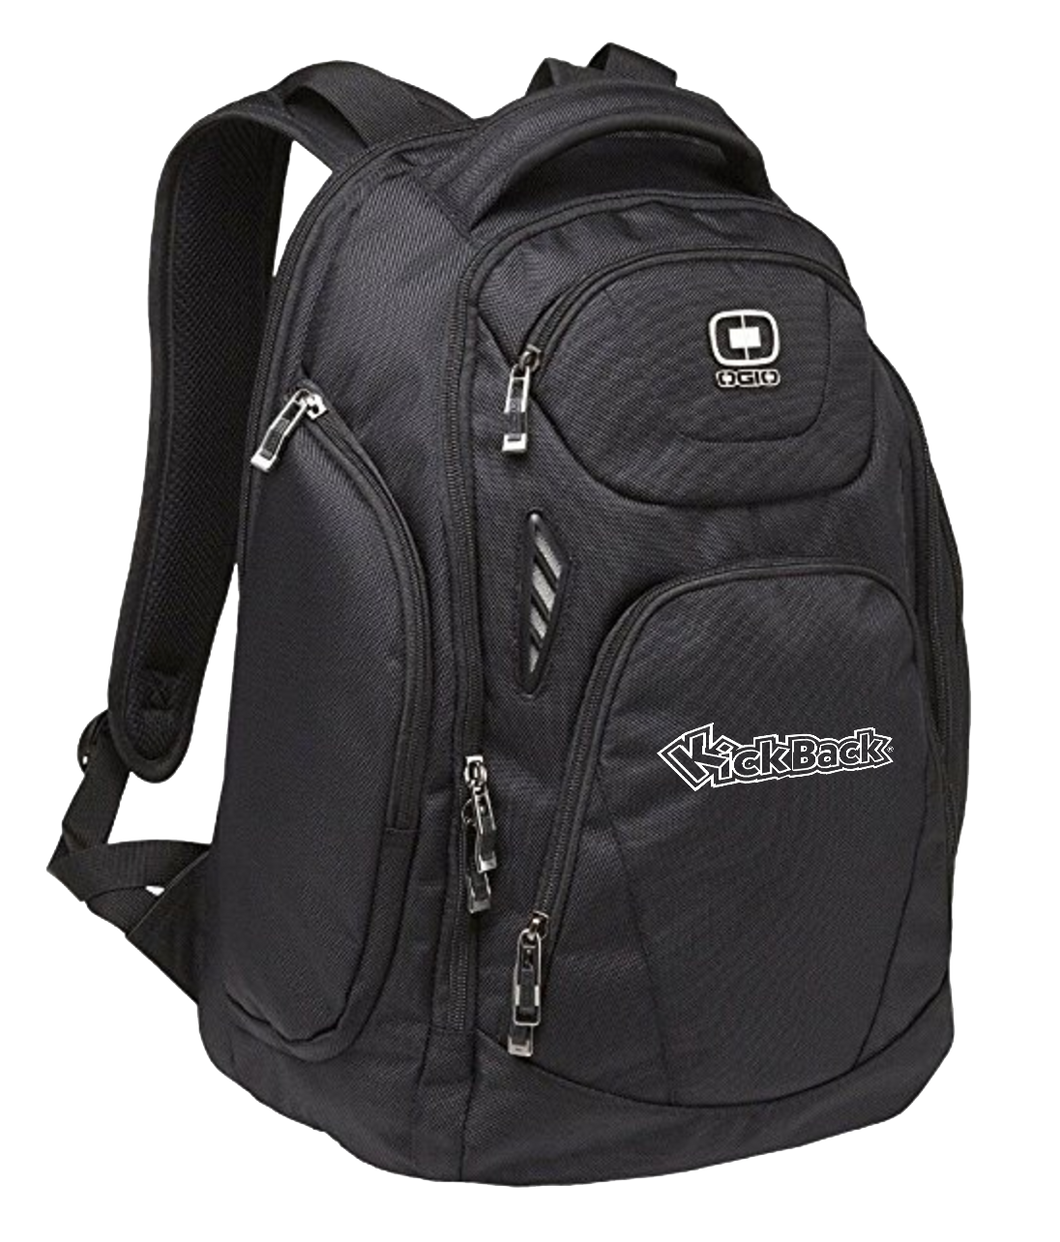 BACKPACK - Ogio